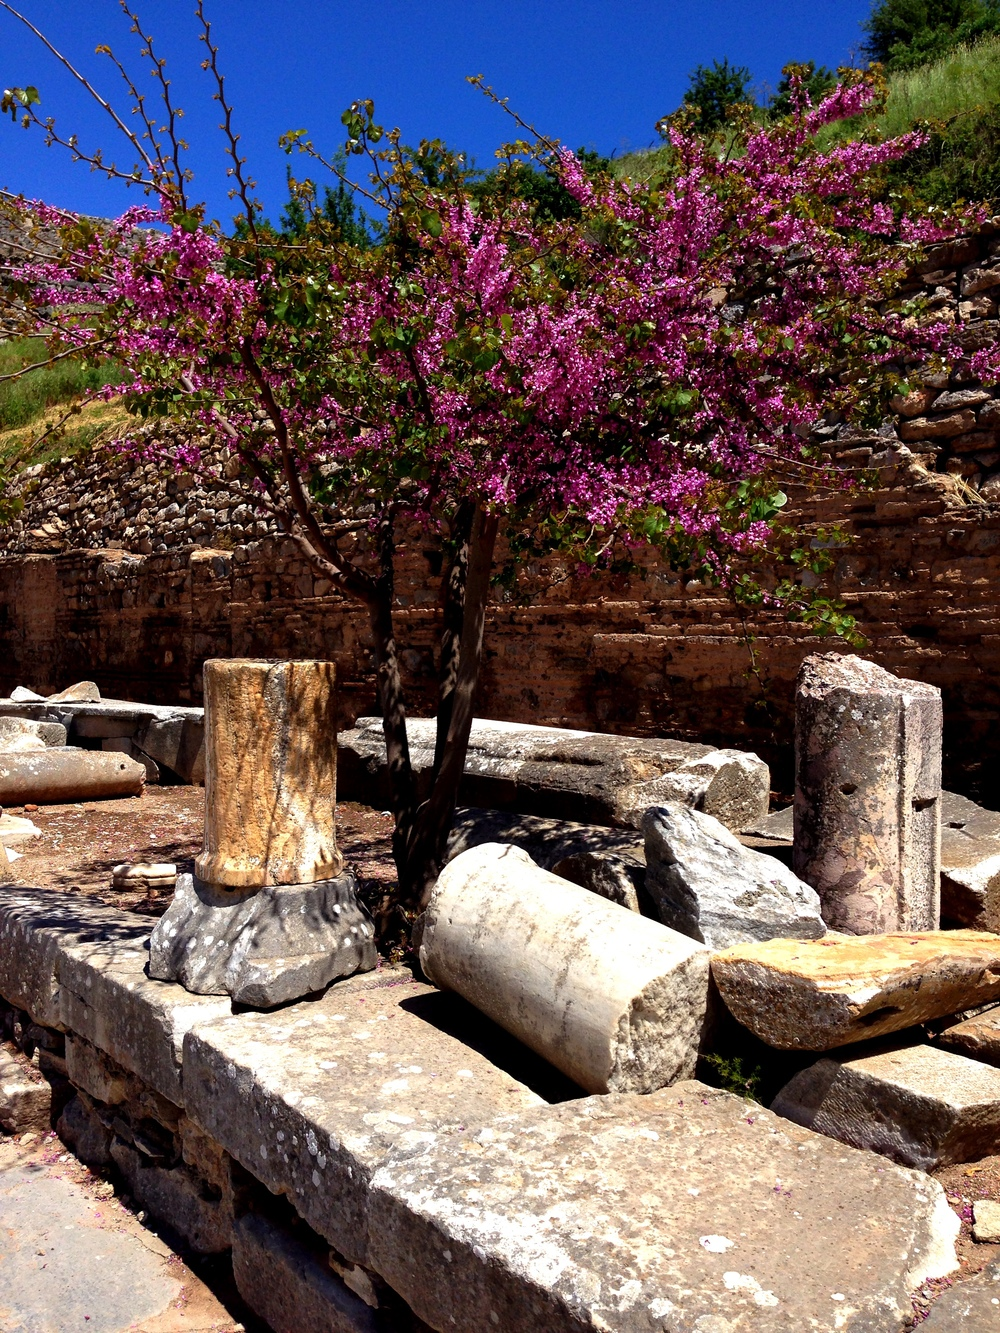 Photo taken at Ephesus near Kusadasi in Turkey. Once an impressive Roman city. Now a splendid place to visit. Photo taken with my iPhone5, edited with the Camera+ app. Check out  Eef Ouwehand's  website for more tips on taking pictures with your smartphone while on vacation.